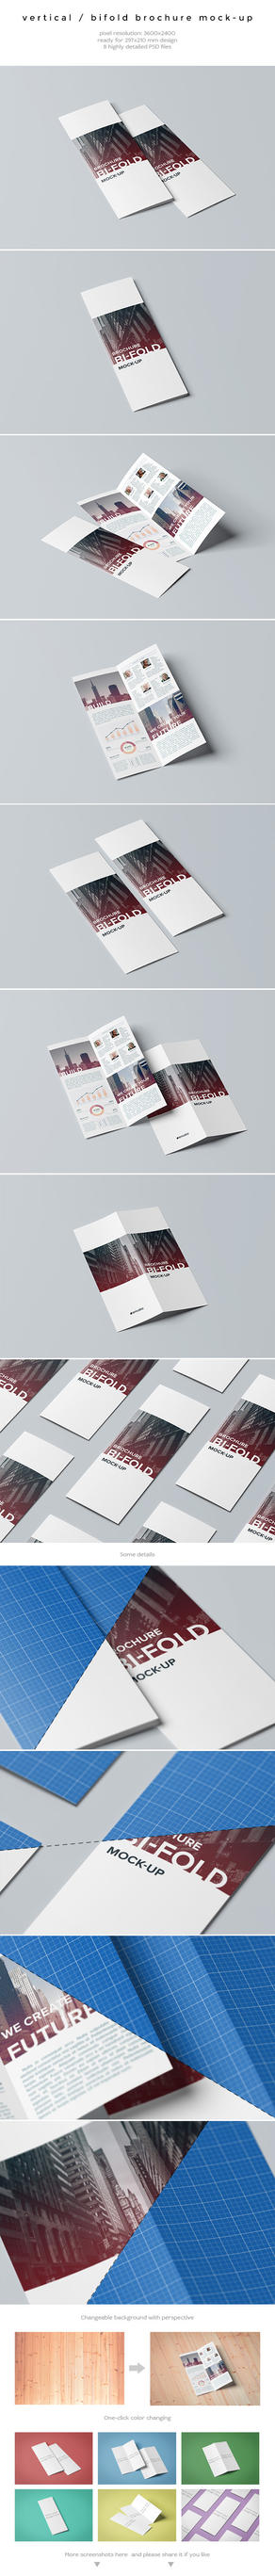 Vertical / Bifold Brochure Mock-Up by kotulsky